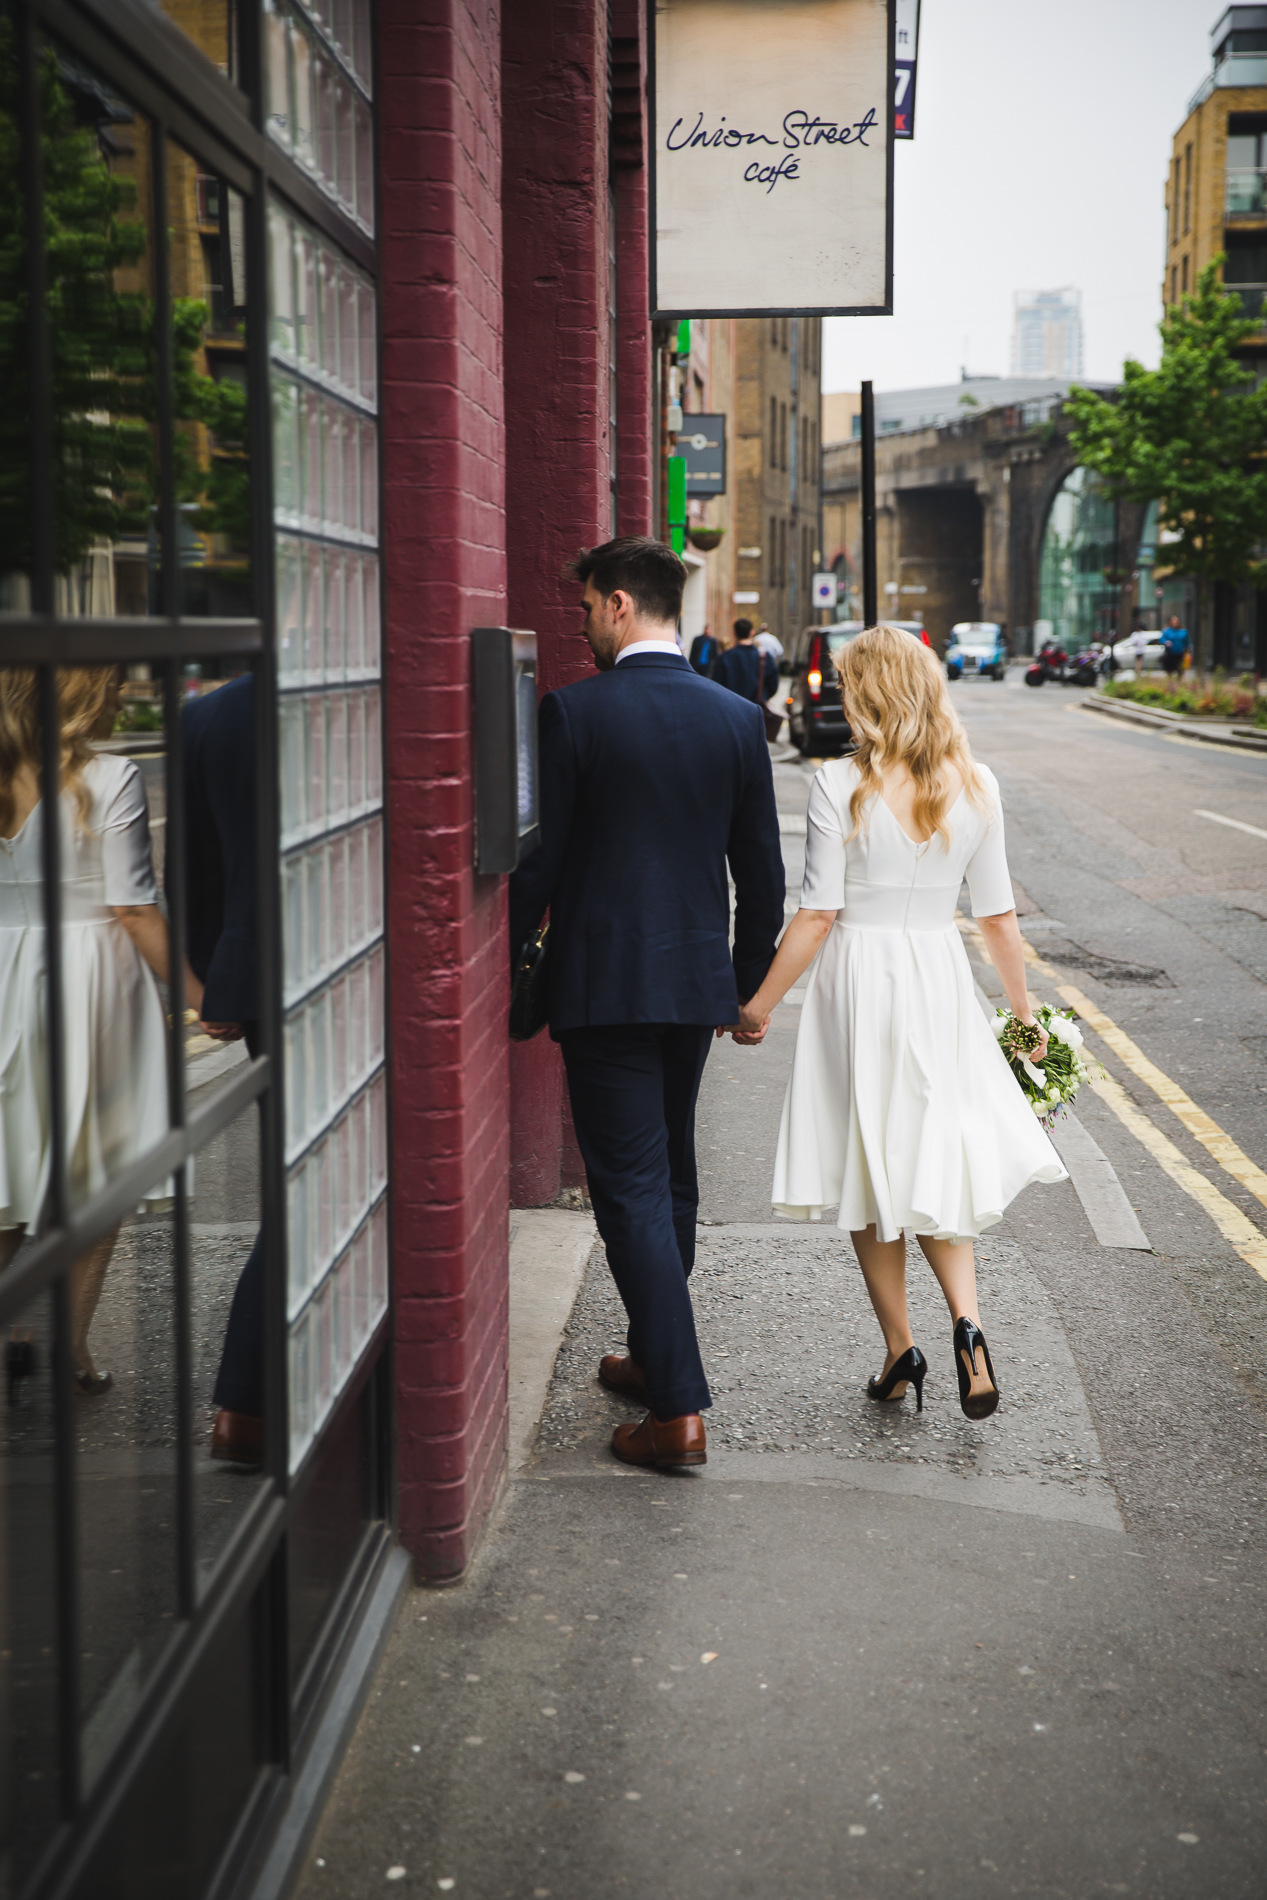 London, UK Elopement Picture | at the Union Street Café following the wedding ceremony for a quick drink